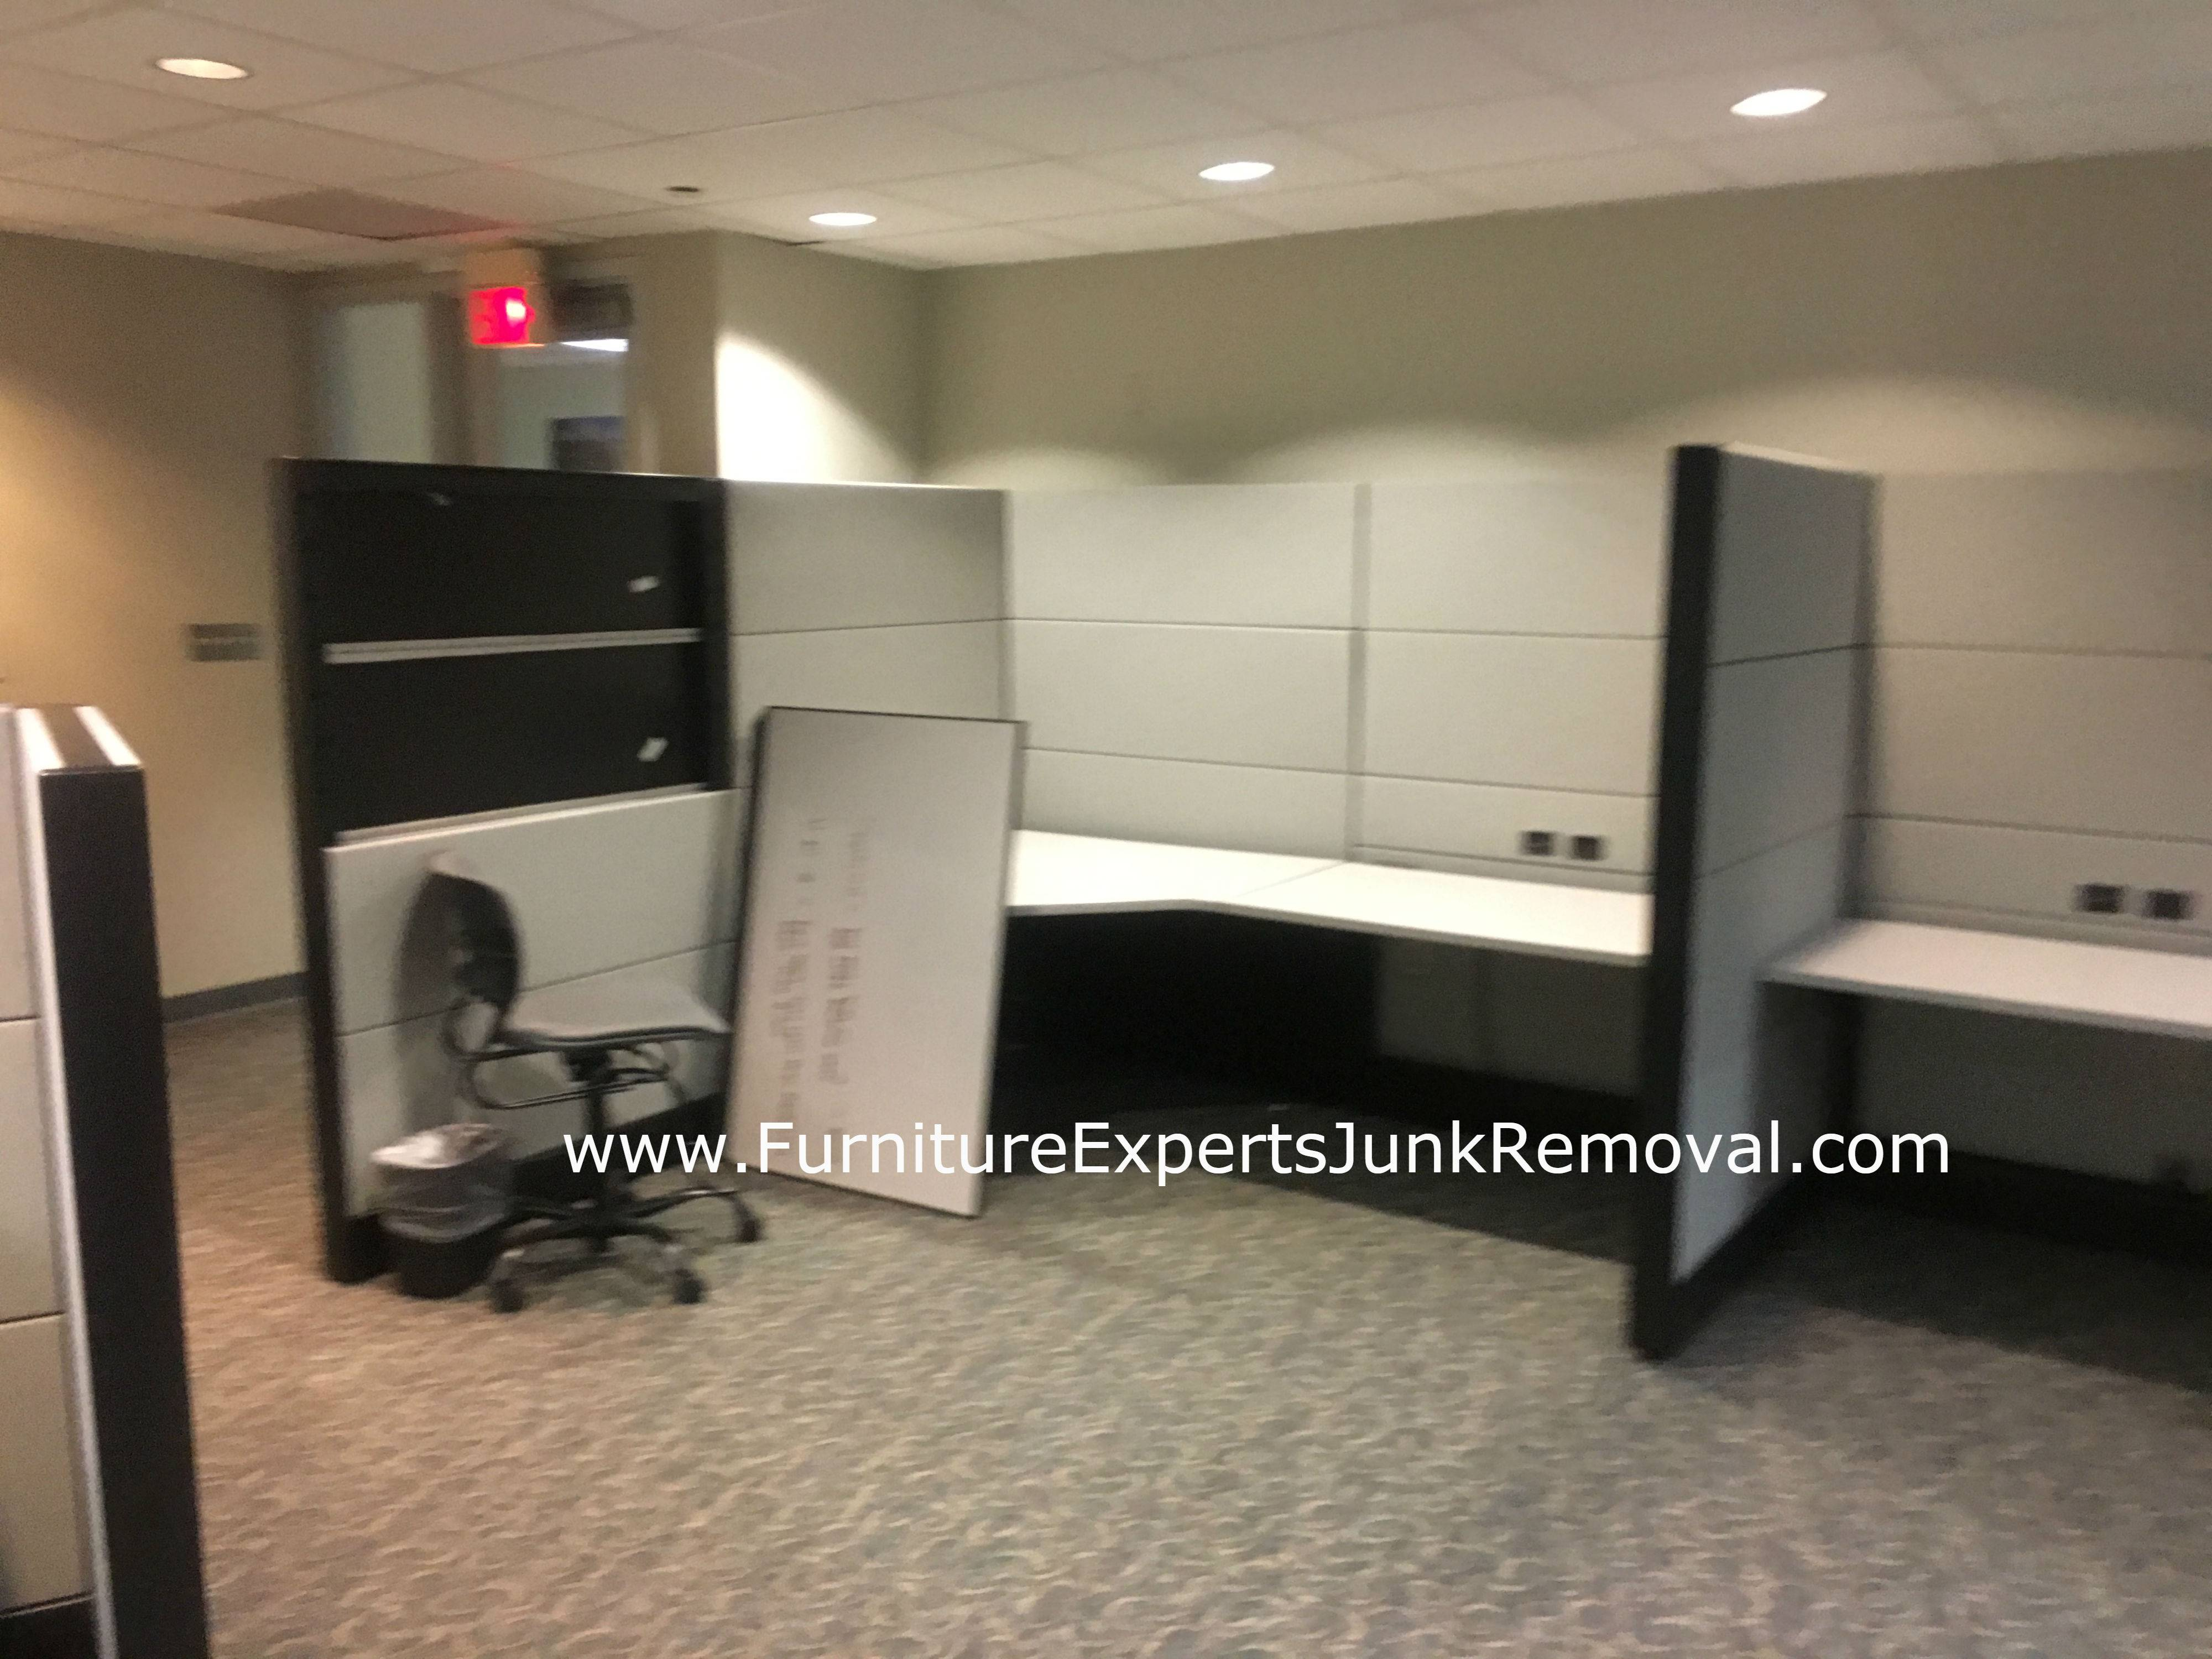 Junk office cubicle removal in sterling VA